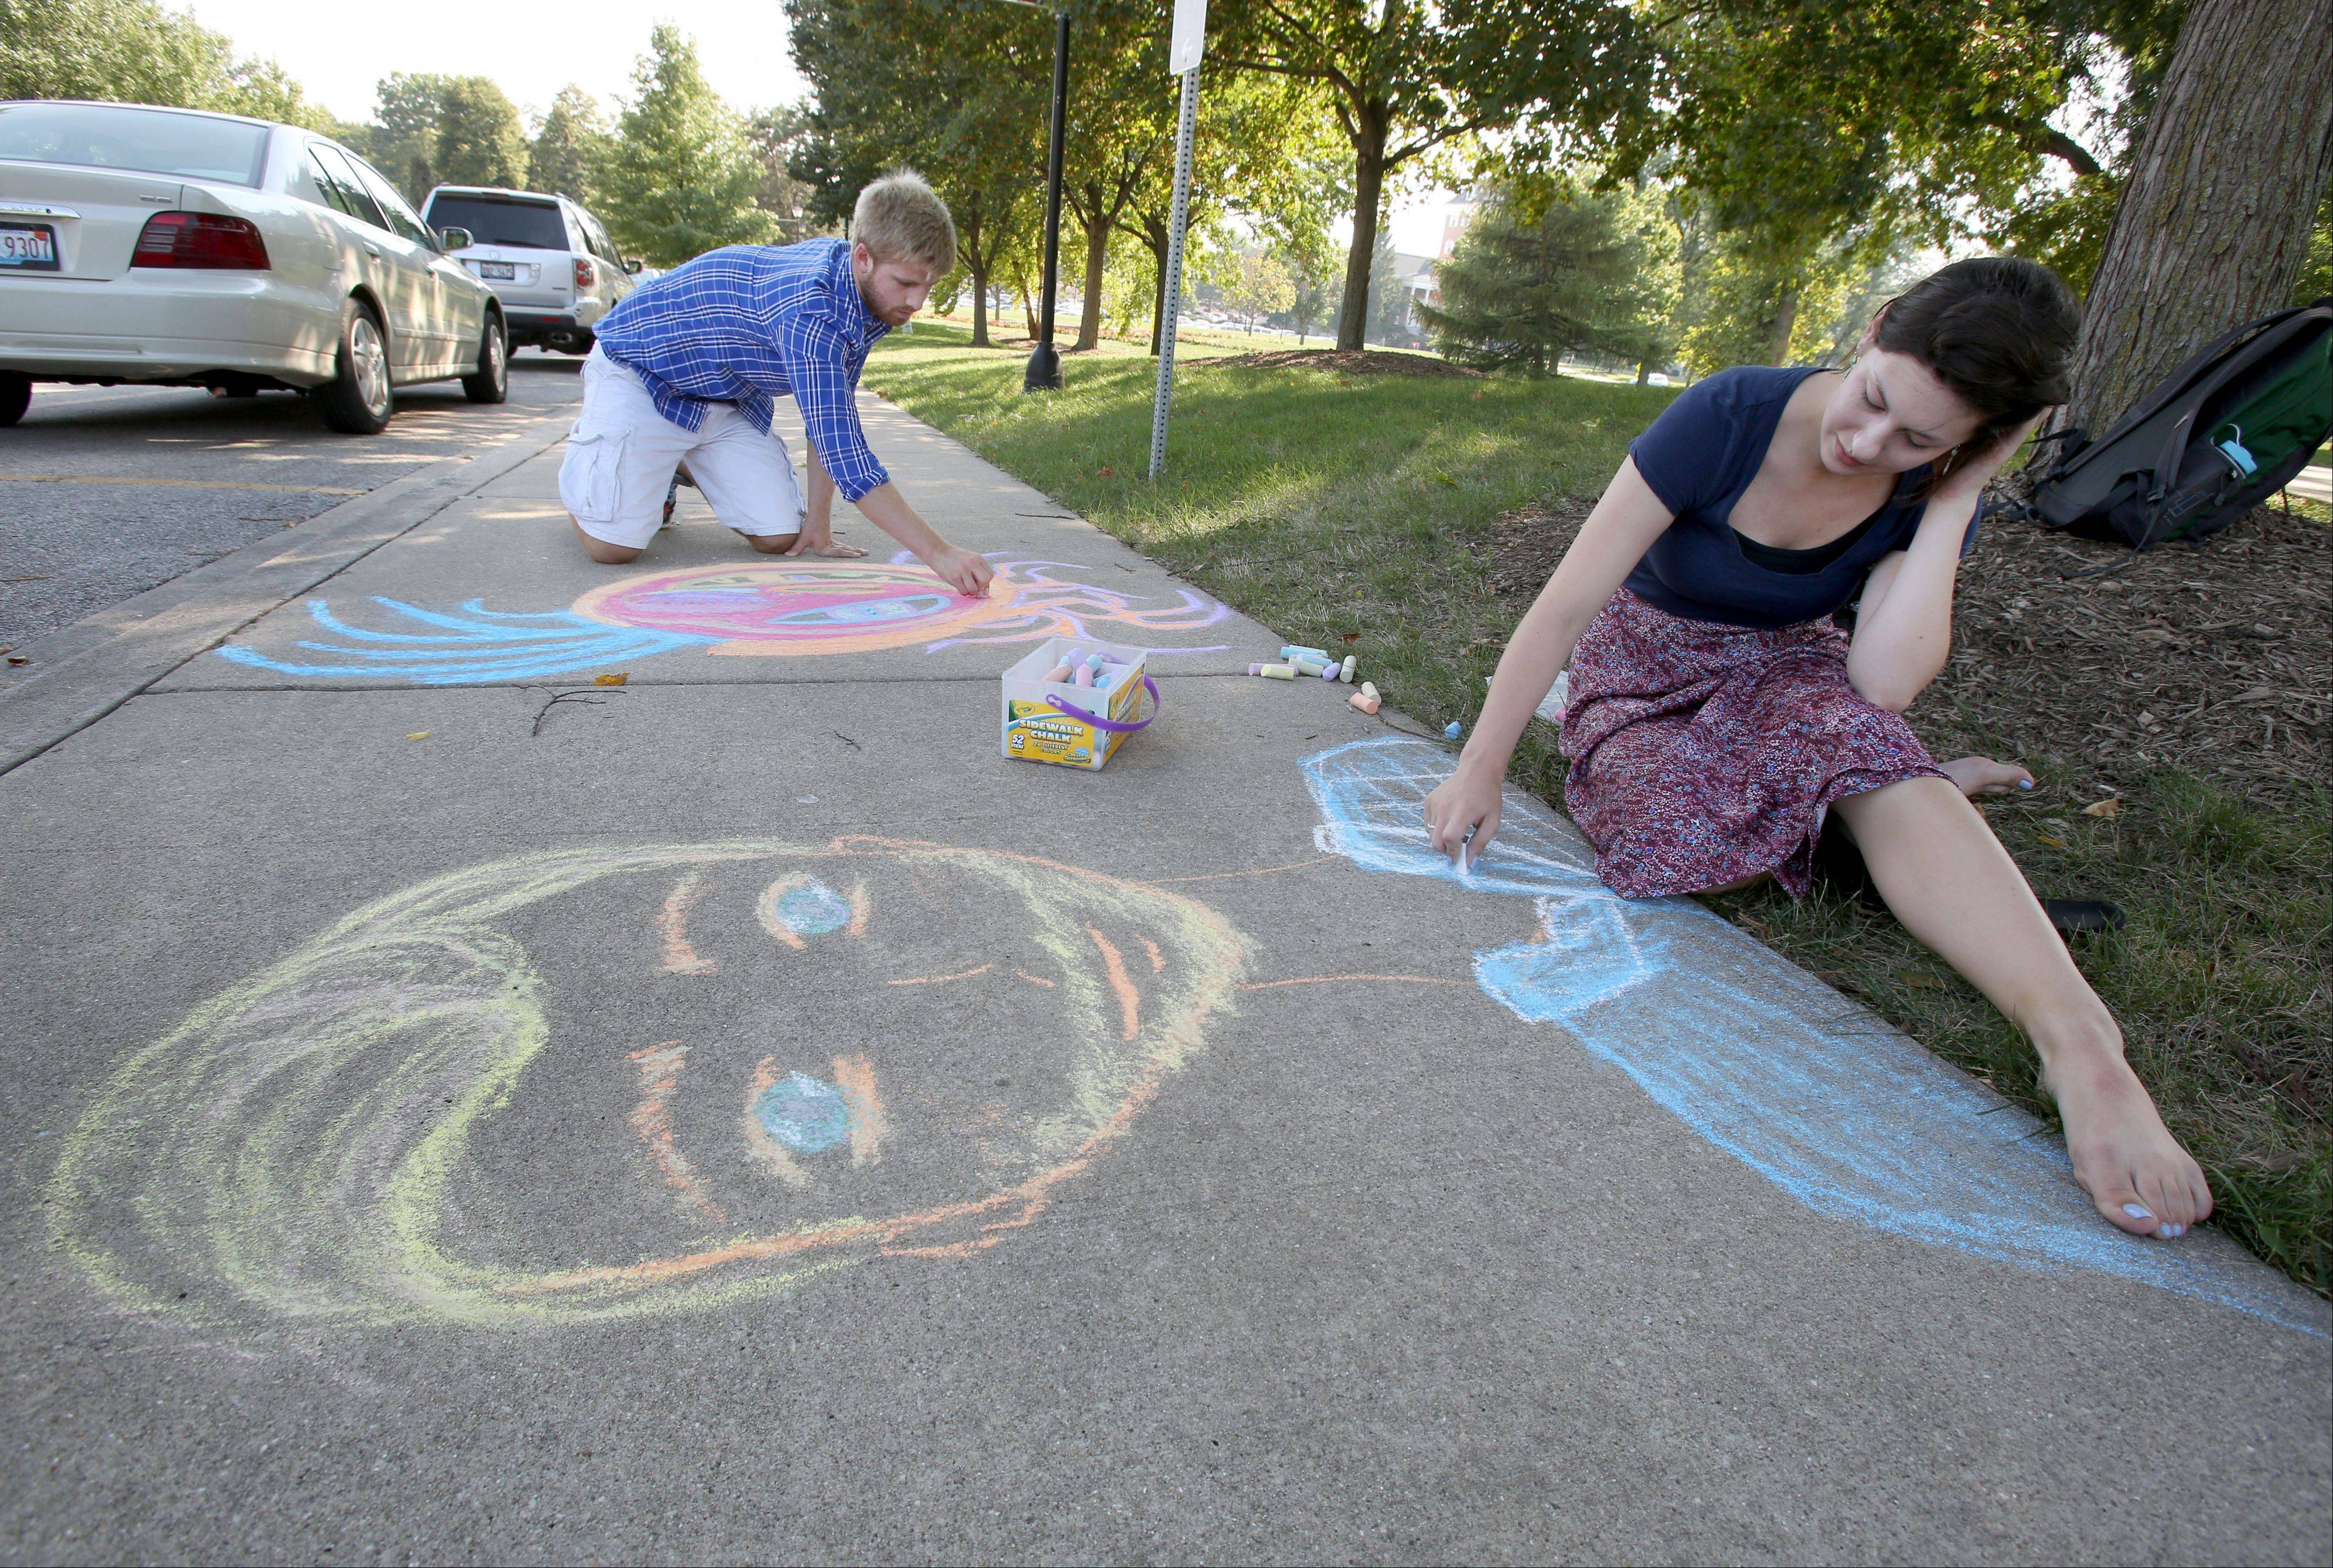 "Beau Westlund, left, helps Christabel Barry, both seniors at Wheaton College, work on chalk drawings on the campus on Tuesday. Barry will be making the chalk drawings around campus for the next 20 days as a stunt called Playing with Chalk, which is part of a writing class project. ""This is my way of making time for art and creativity and inviting other people to help"". she said."